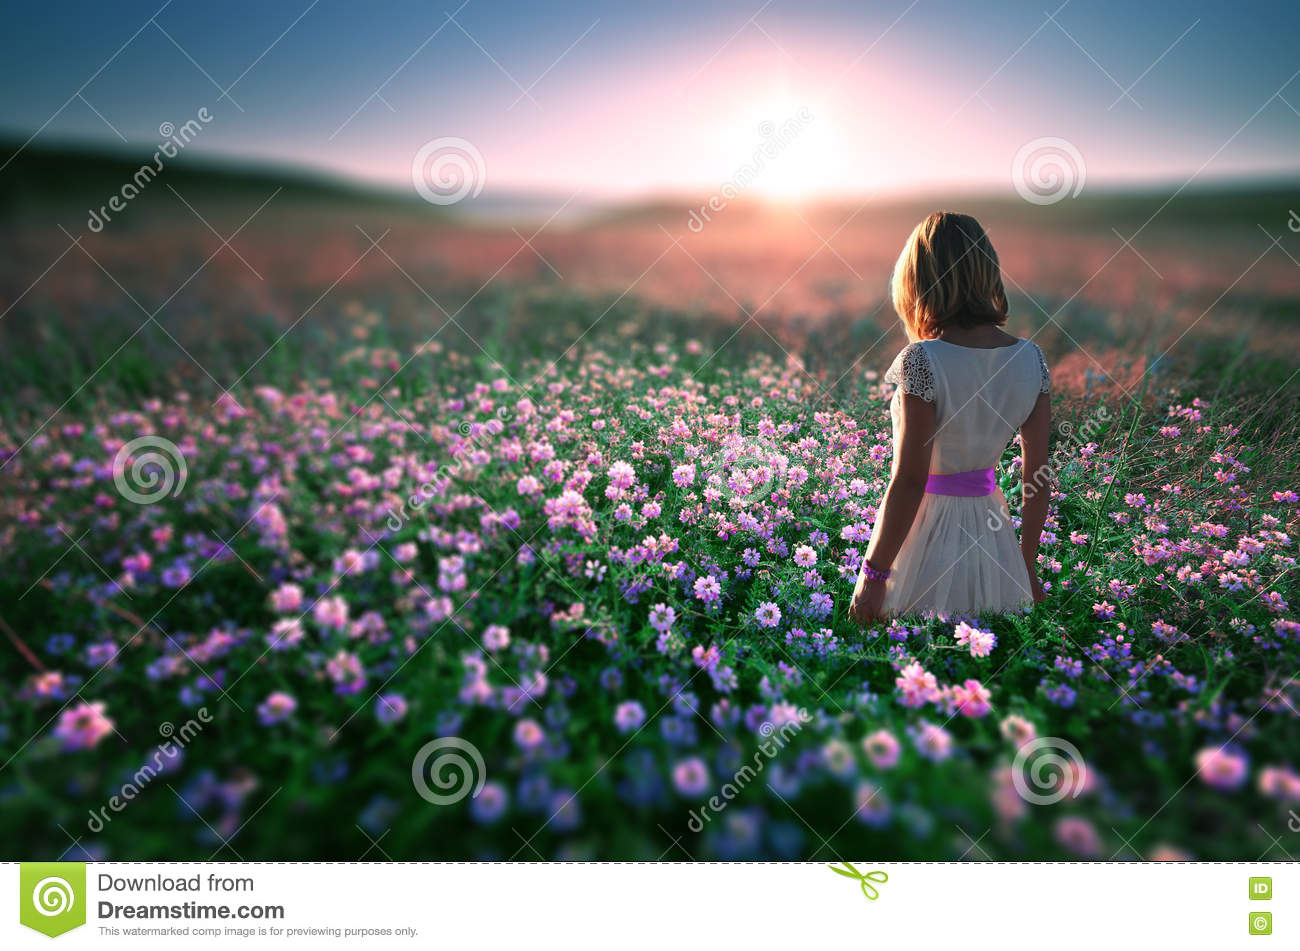 Woman In Field Of Flowers At Sunset Stock Photo - Image ...